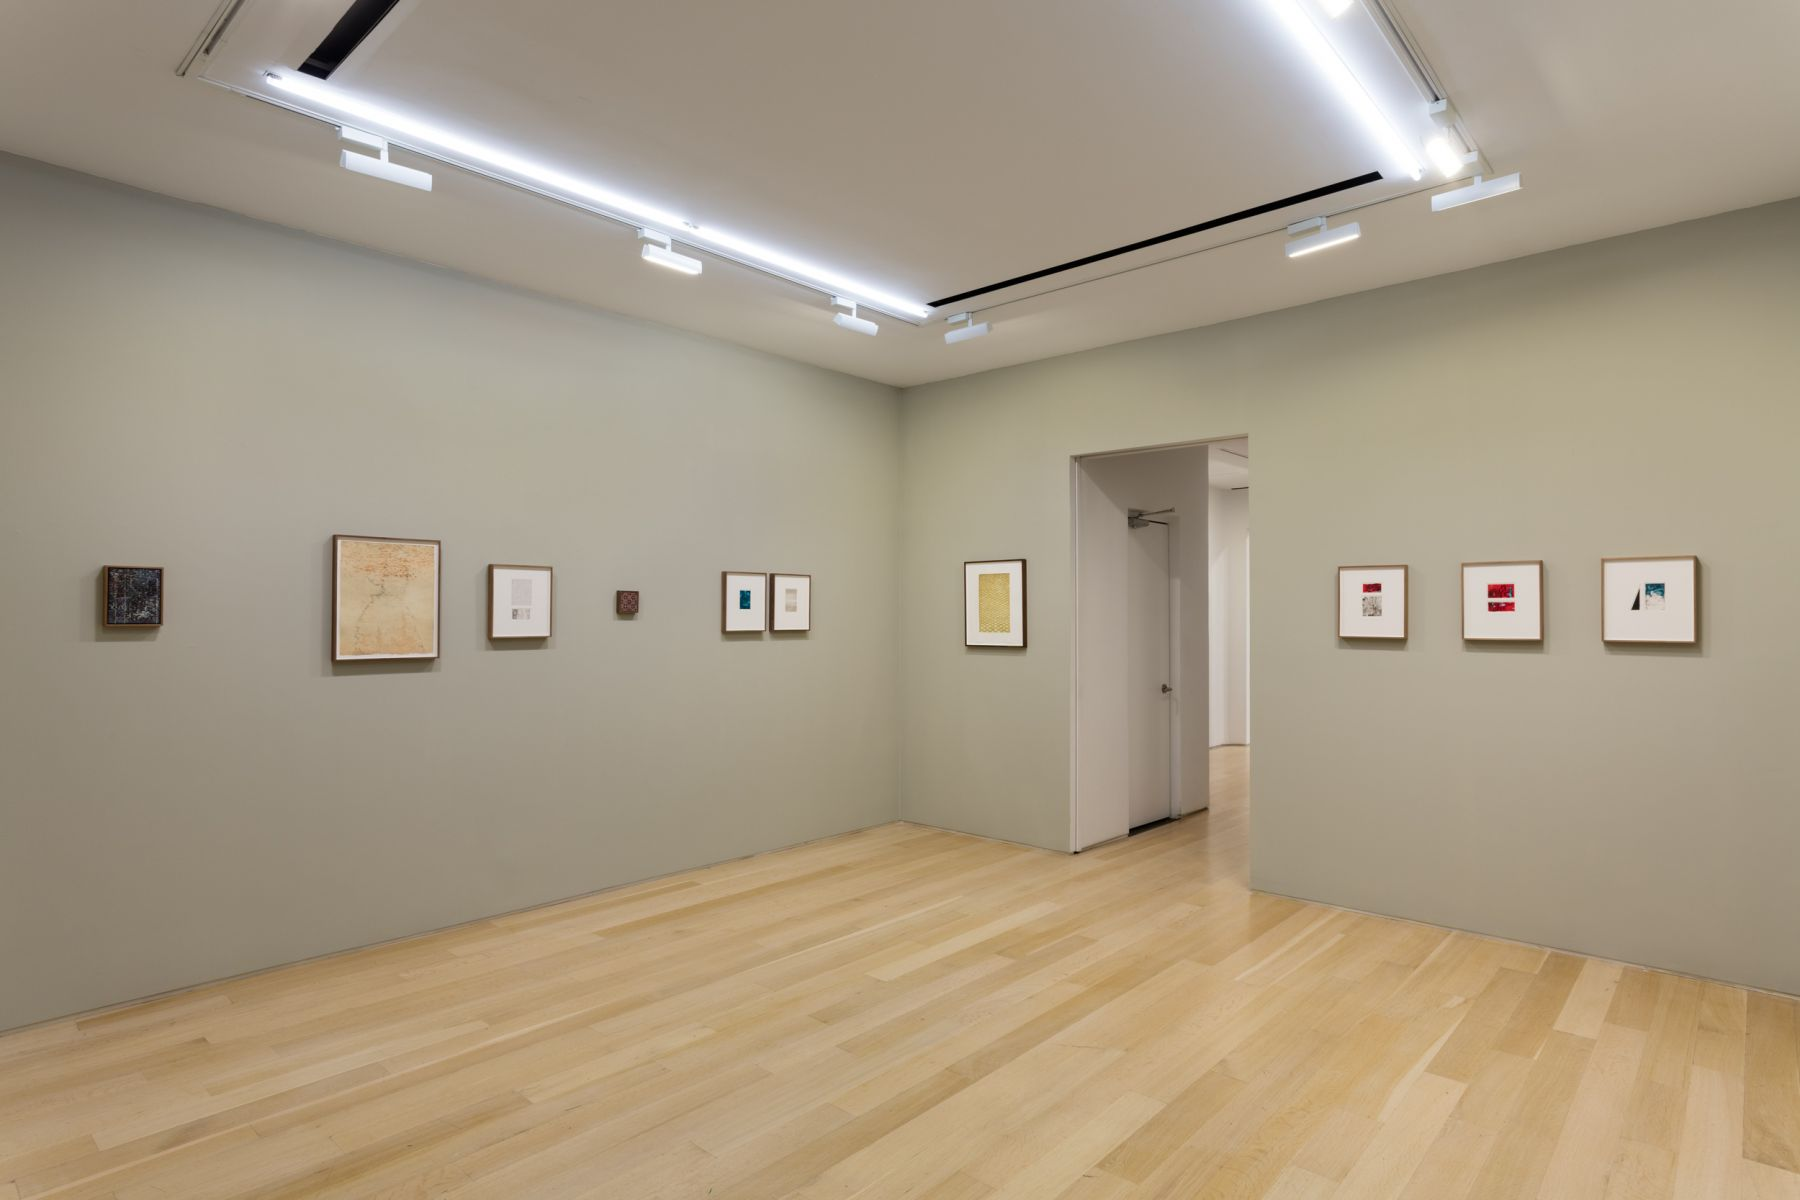 Gallery installation view, 2018